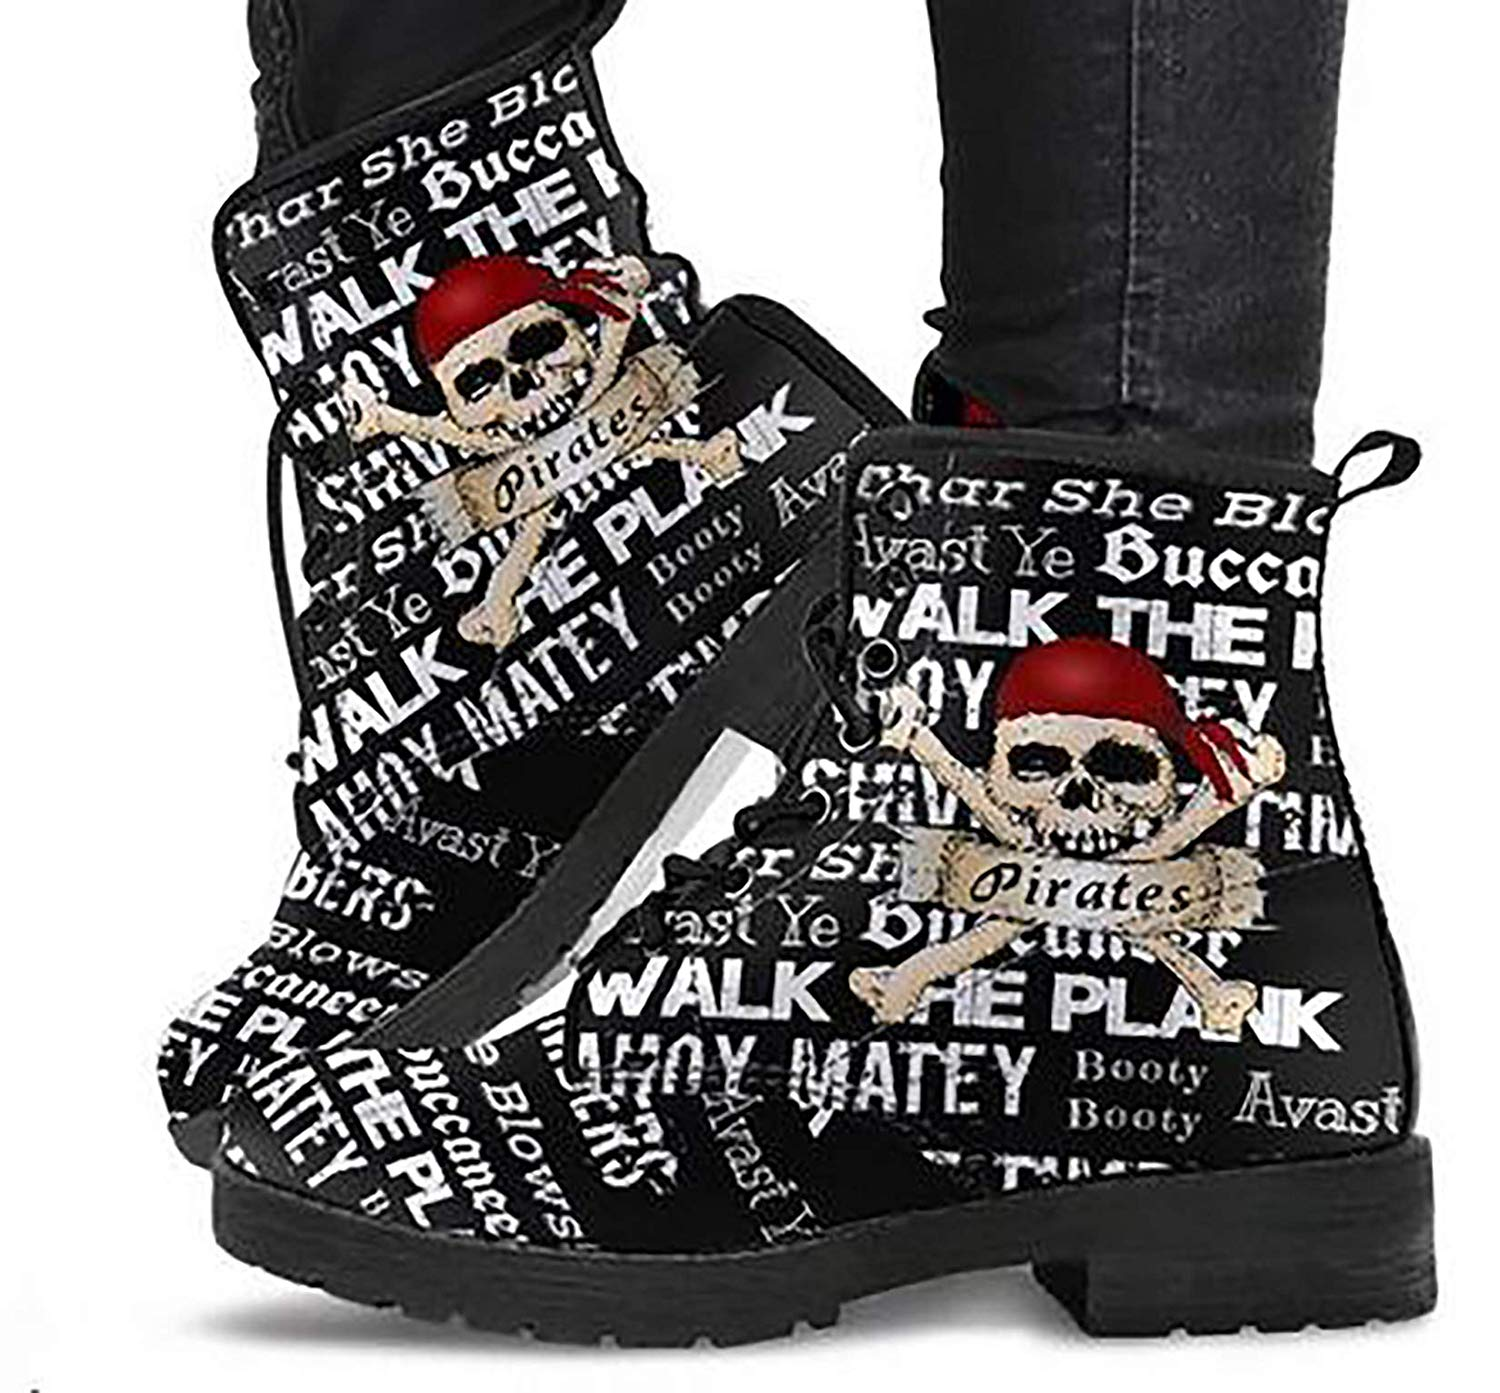 32d763dd6a5e7 Cheap Pirate Boots, find Pirate Boots deals on line at Alibaba.com